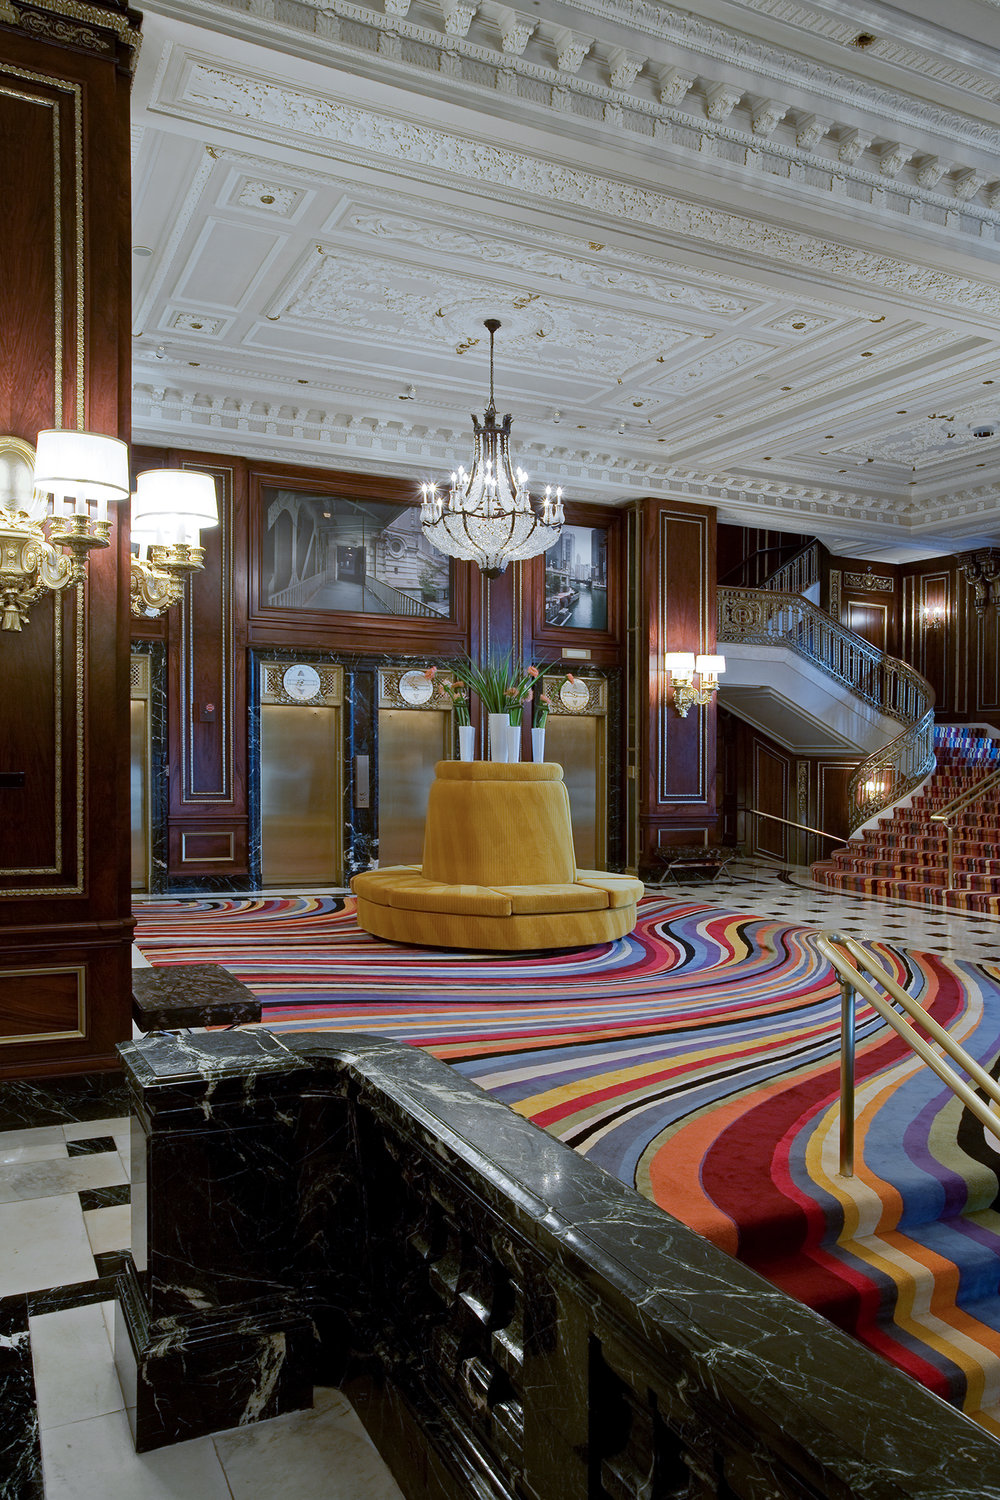 Renaissance Blackstone Hotel   636 South Michigan Avenue  Chicago, Illinois    More information